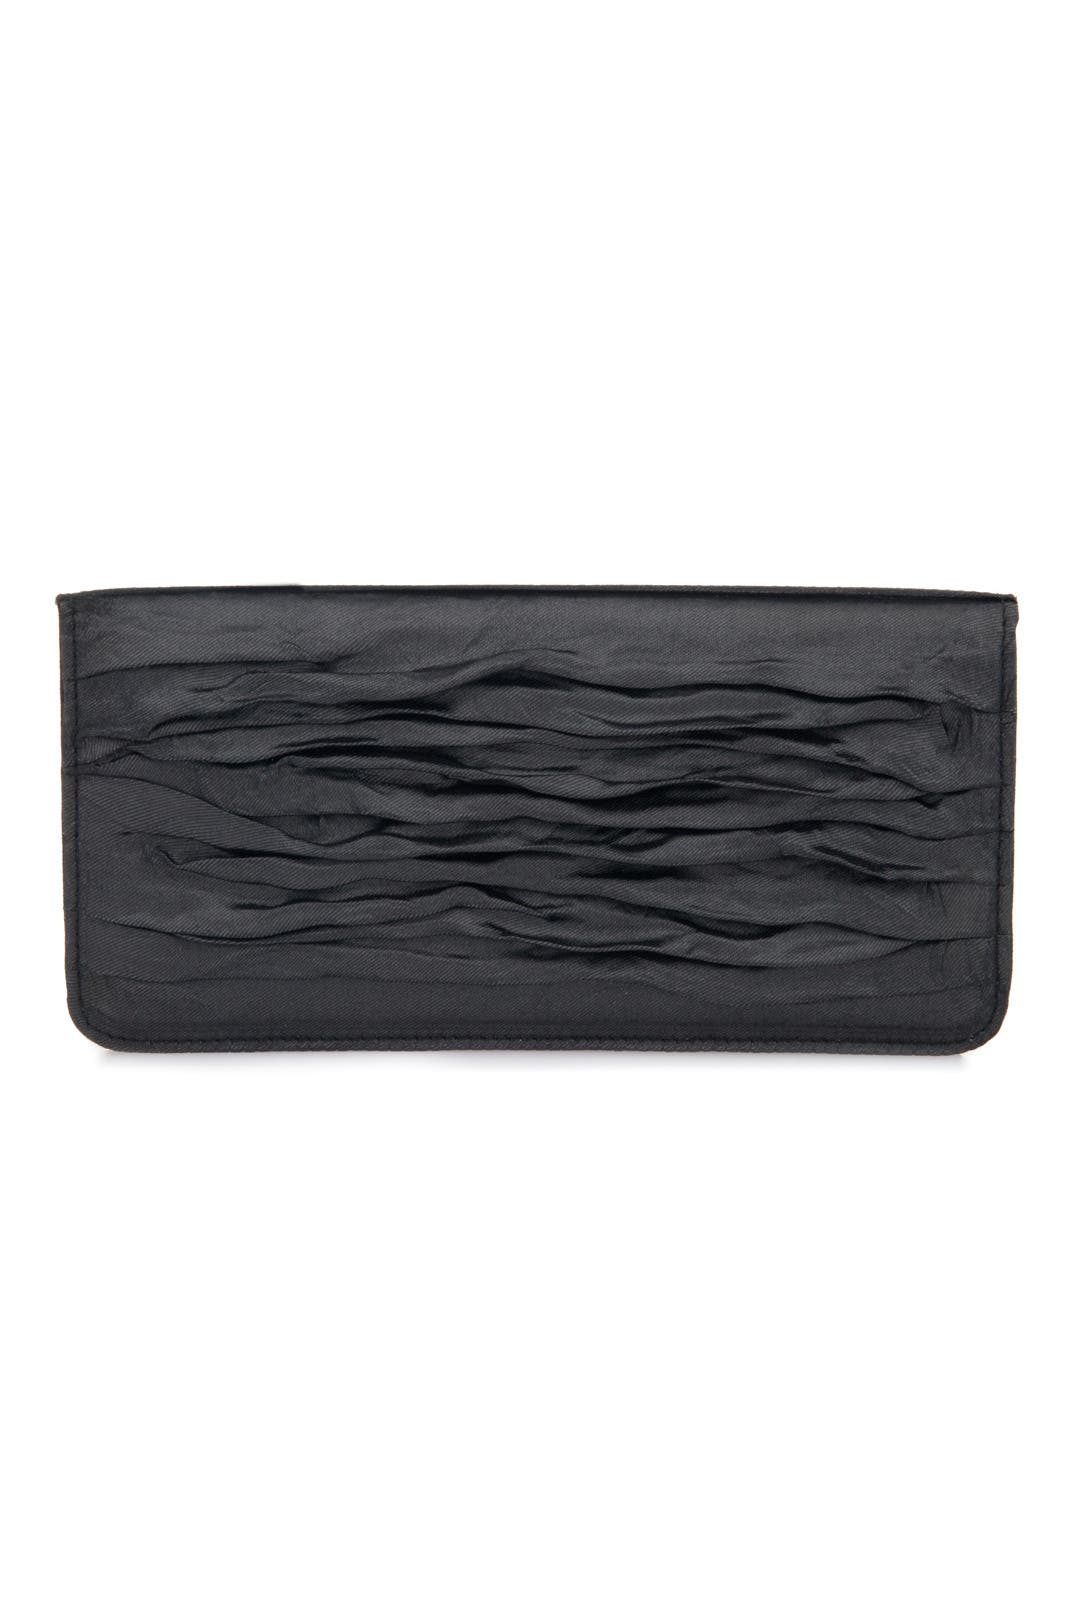 Black Crinkle Clutch by Nicole Miller Accessories